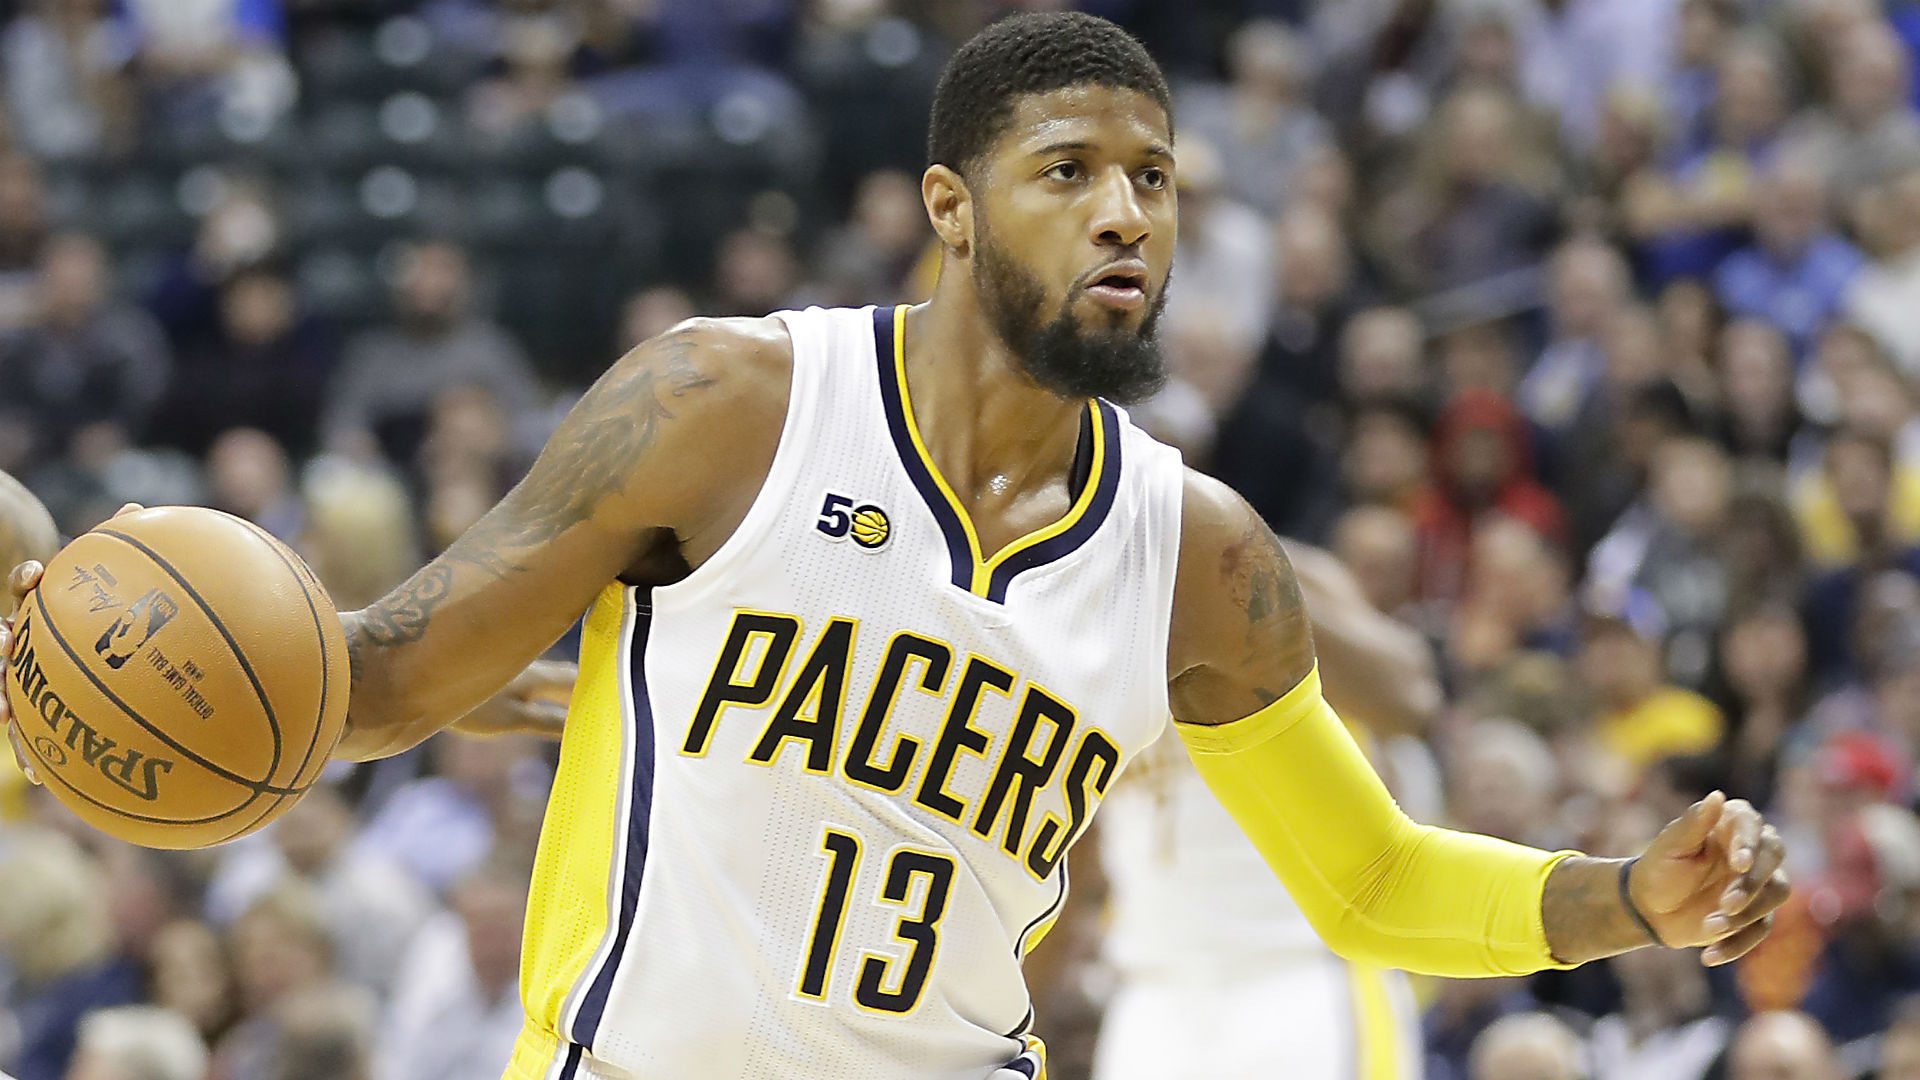 Paul-george-pacers-getty-ftr-022217_1j1udxyrhab1w1kmf0v11q3stj